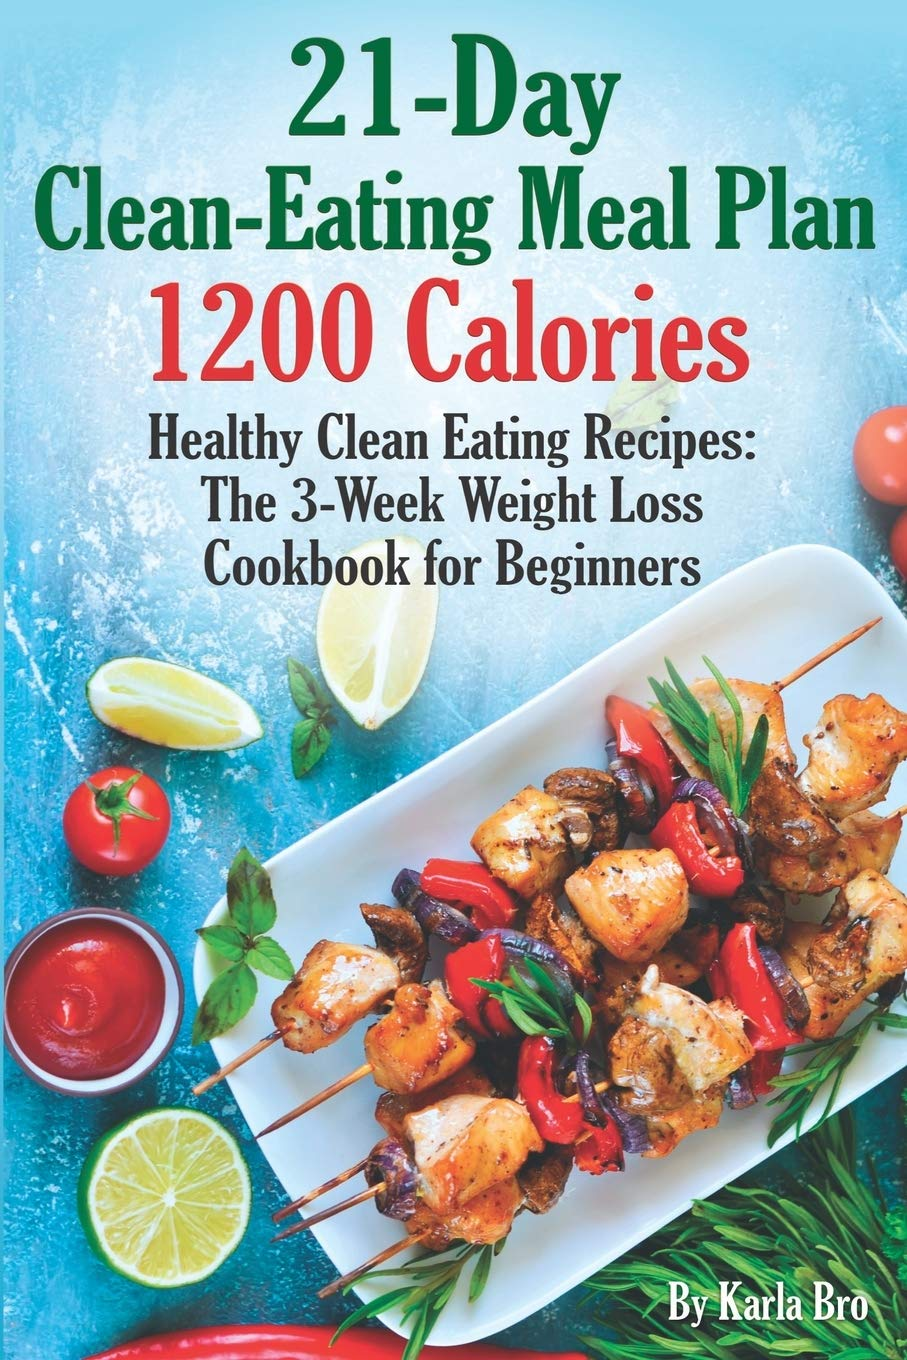 21 Day Clean Eating Meal Plan 1200 Calories Healthy Clean Eating Recipes The 3 Week Weight Loss Cookbook For Beginners Amazon Co Uk Bro Karla 9781090877031 Books